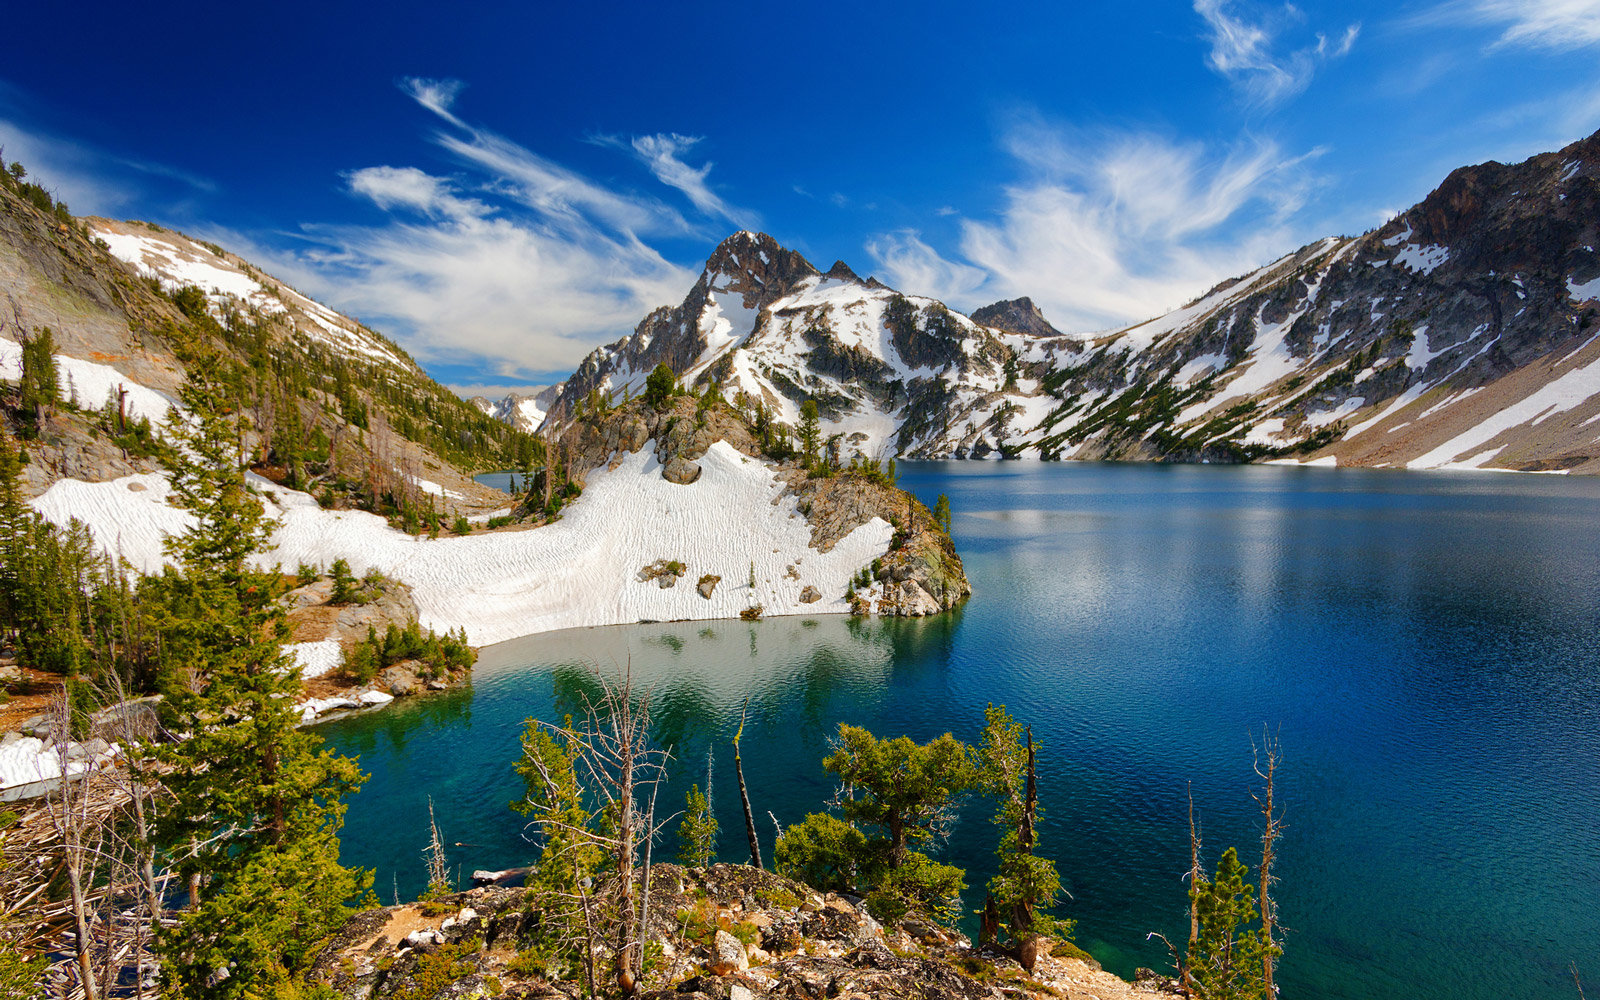 Sawtooth Lake on partly cloudy afternoon in Sawtooth Wilderness outside Stanley, Idaho.  The lake is a popular 10-mile round-trip hike and often snow-covered well into summer.